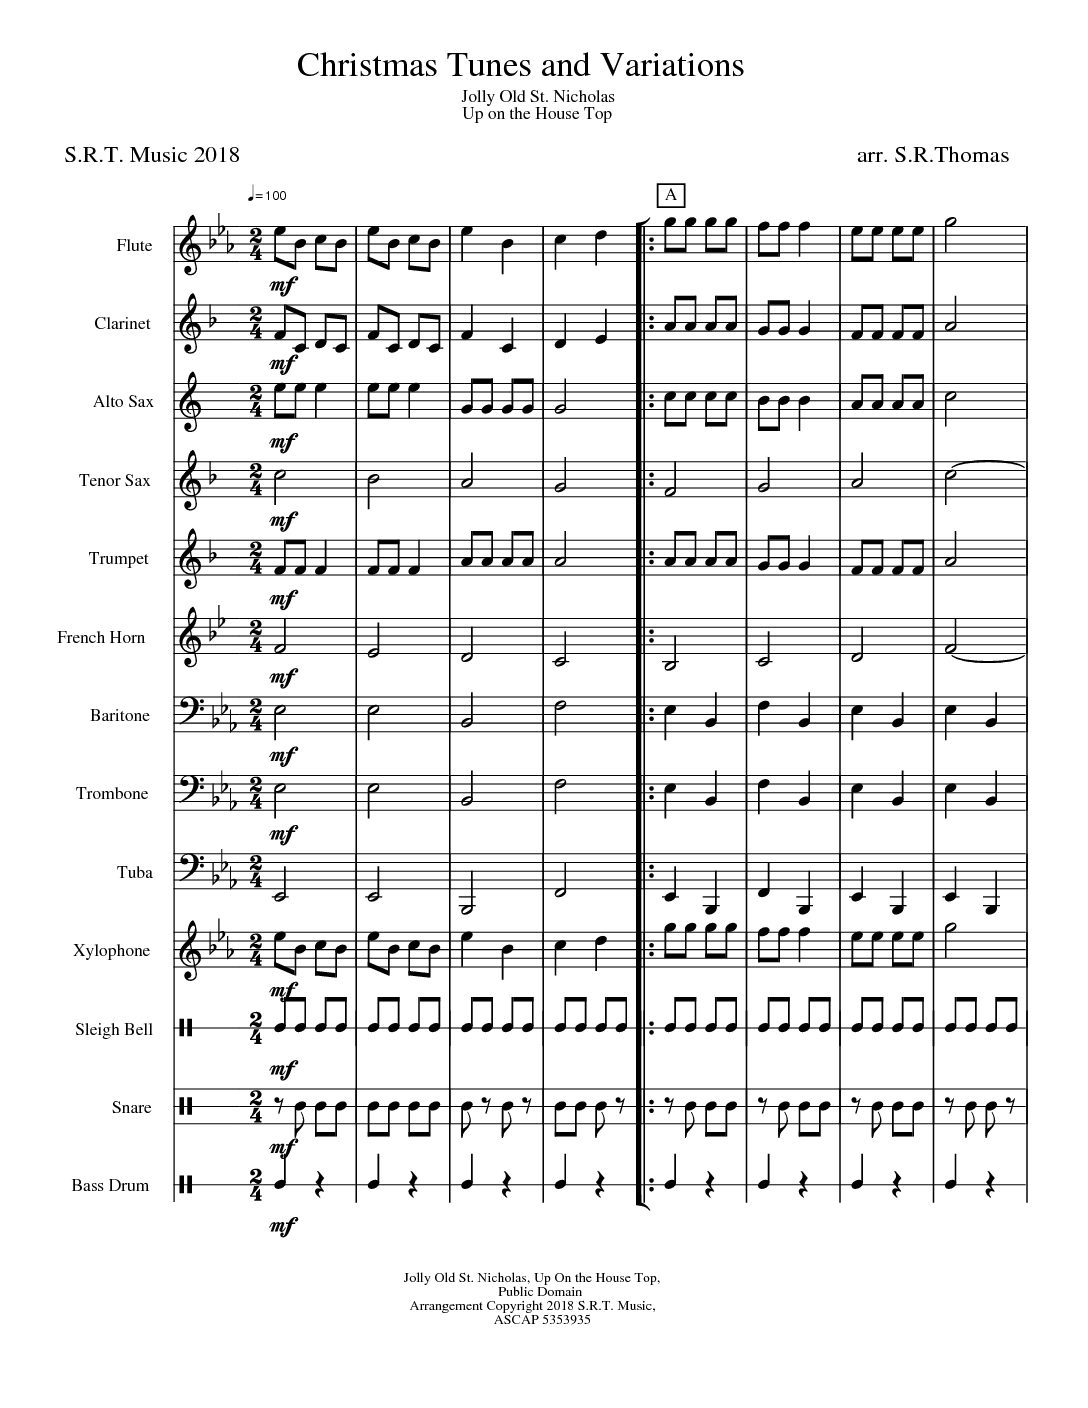 Christmas Tunes and Variations scoreSMMP pdf